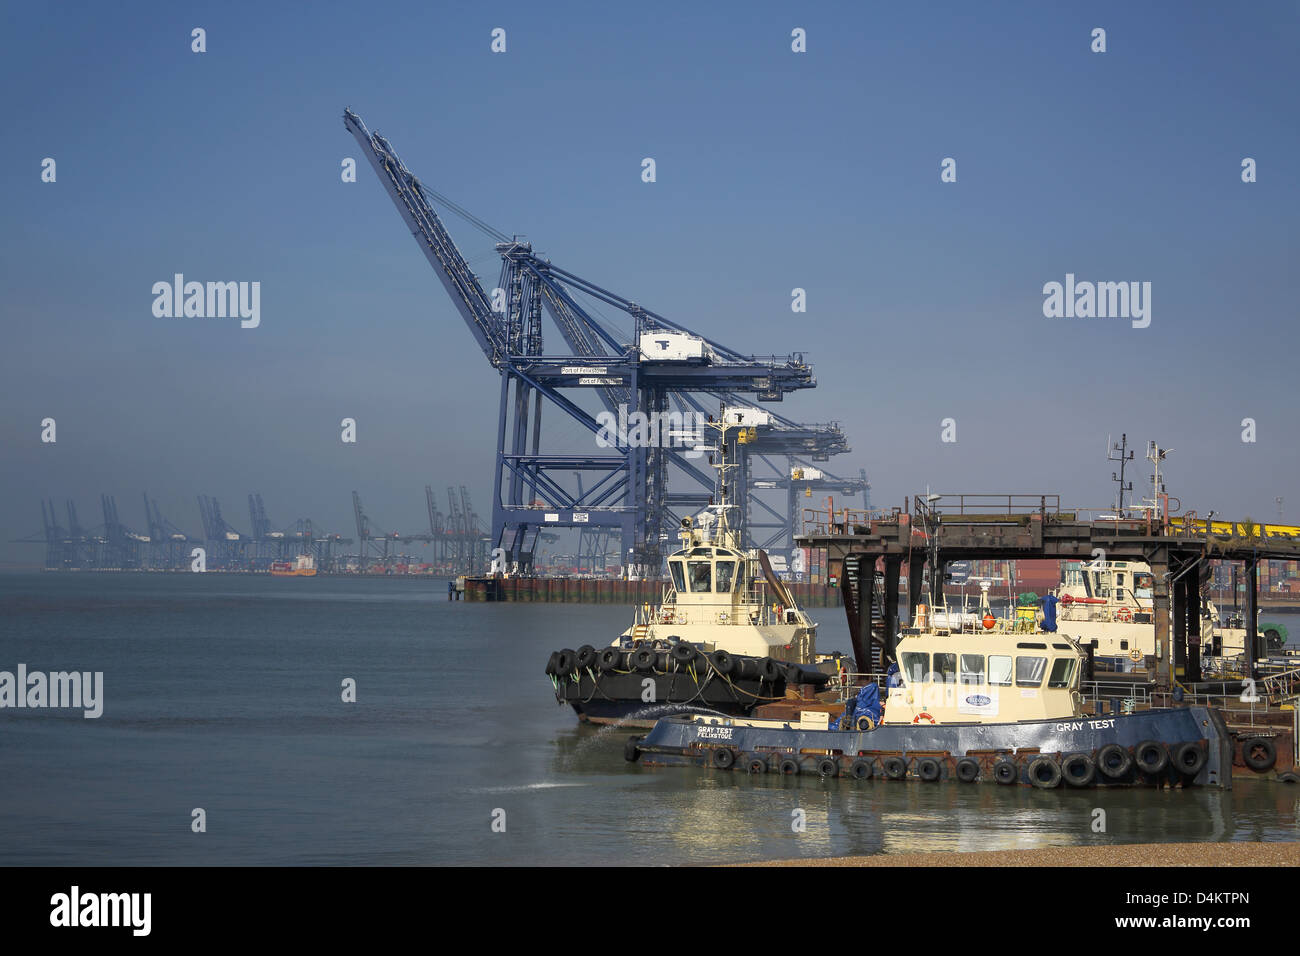 cranes at the port of felixstowe on the sussex coast - Stock Image